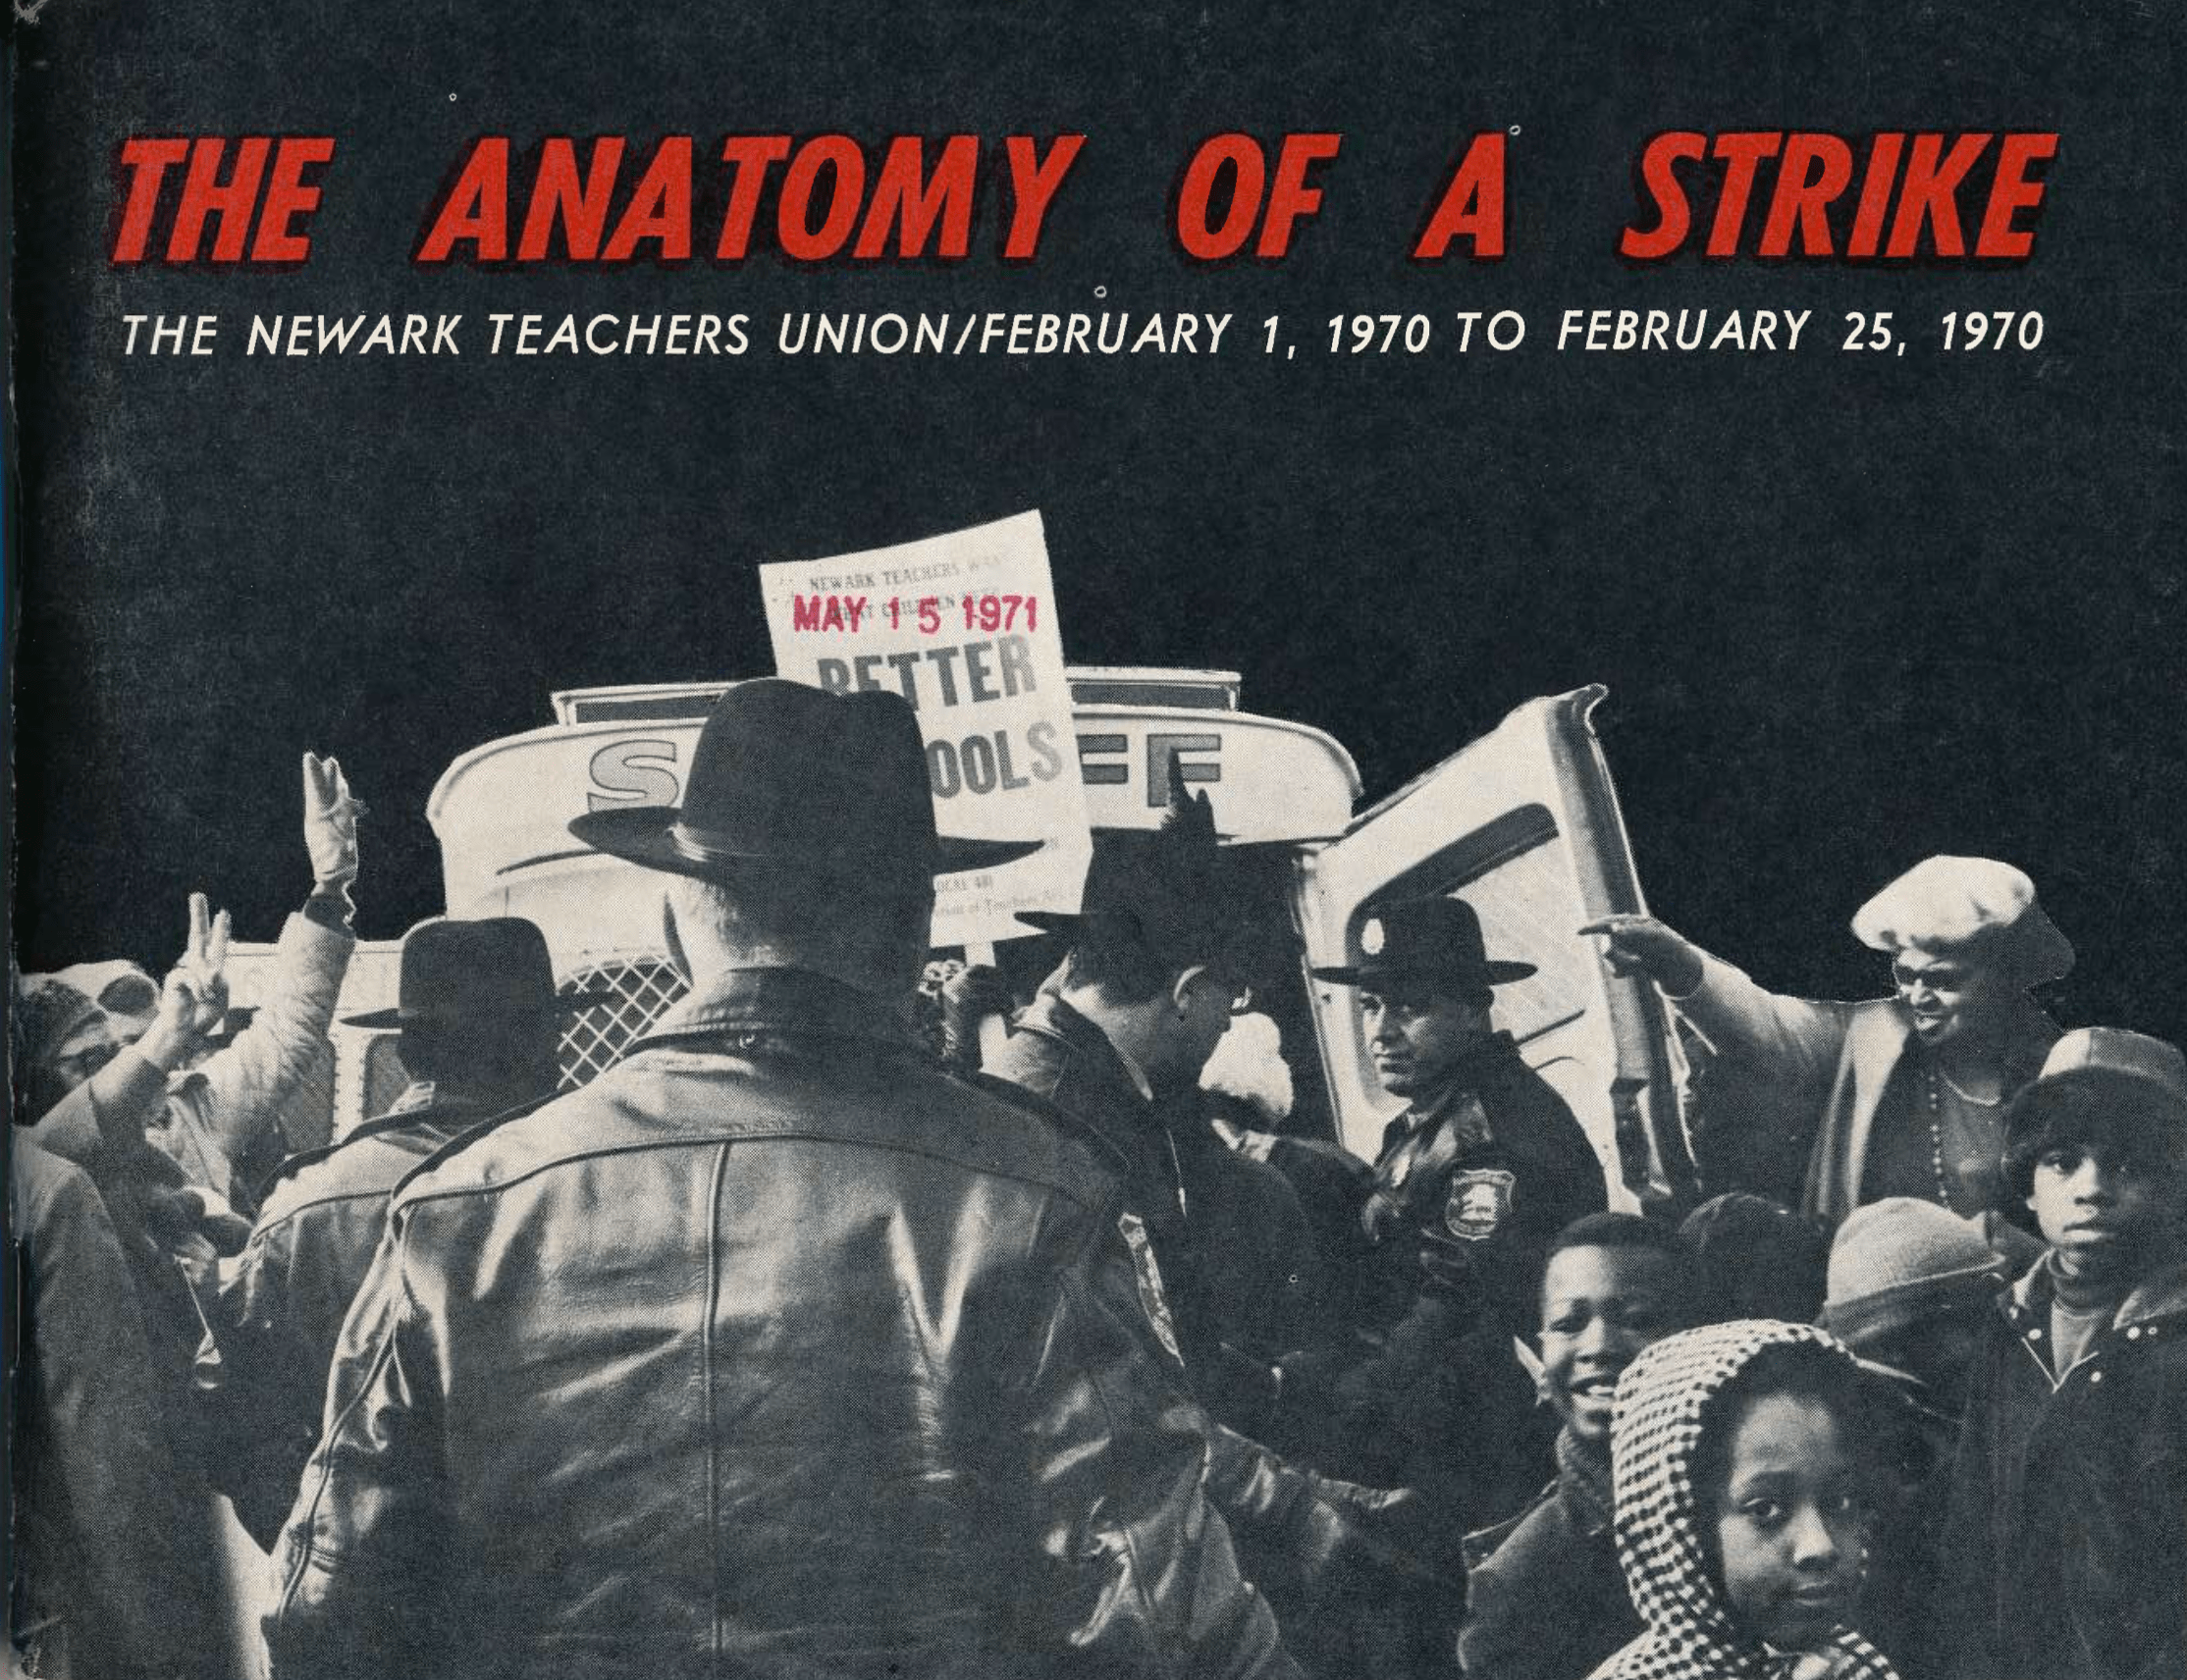 The Anatomy of a Strike